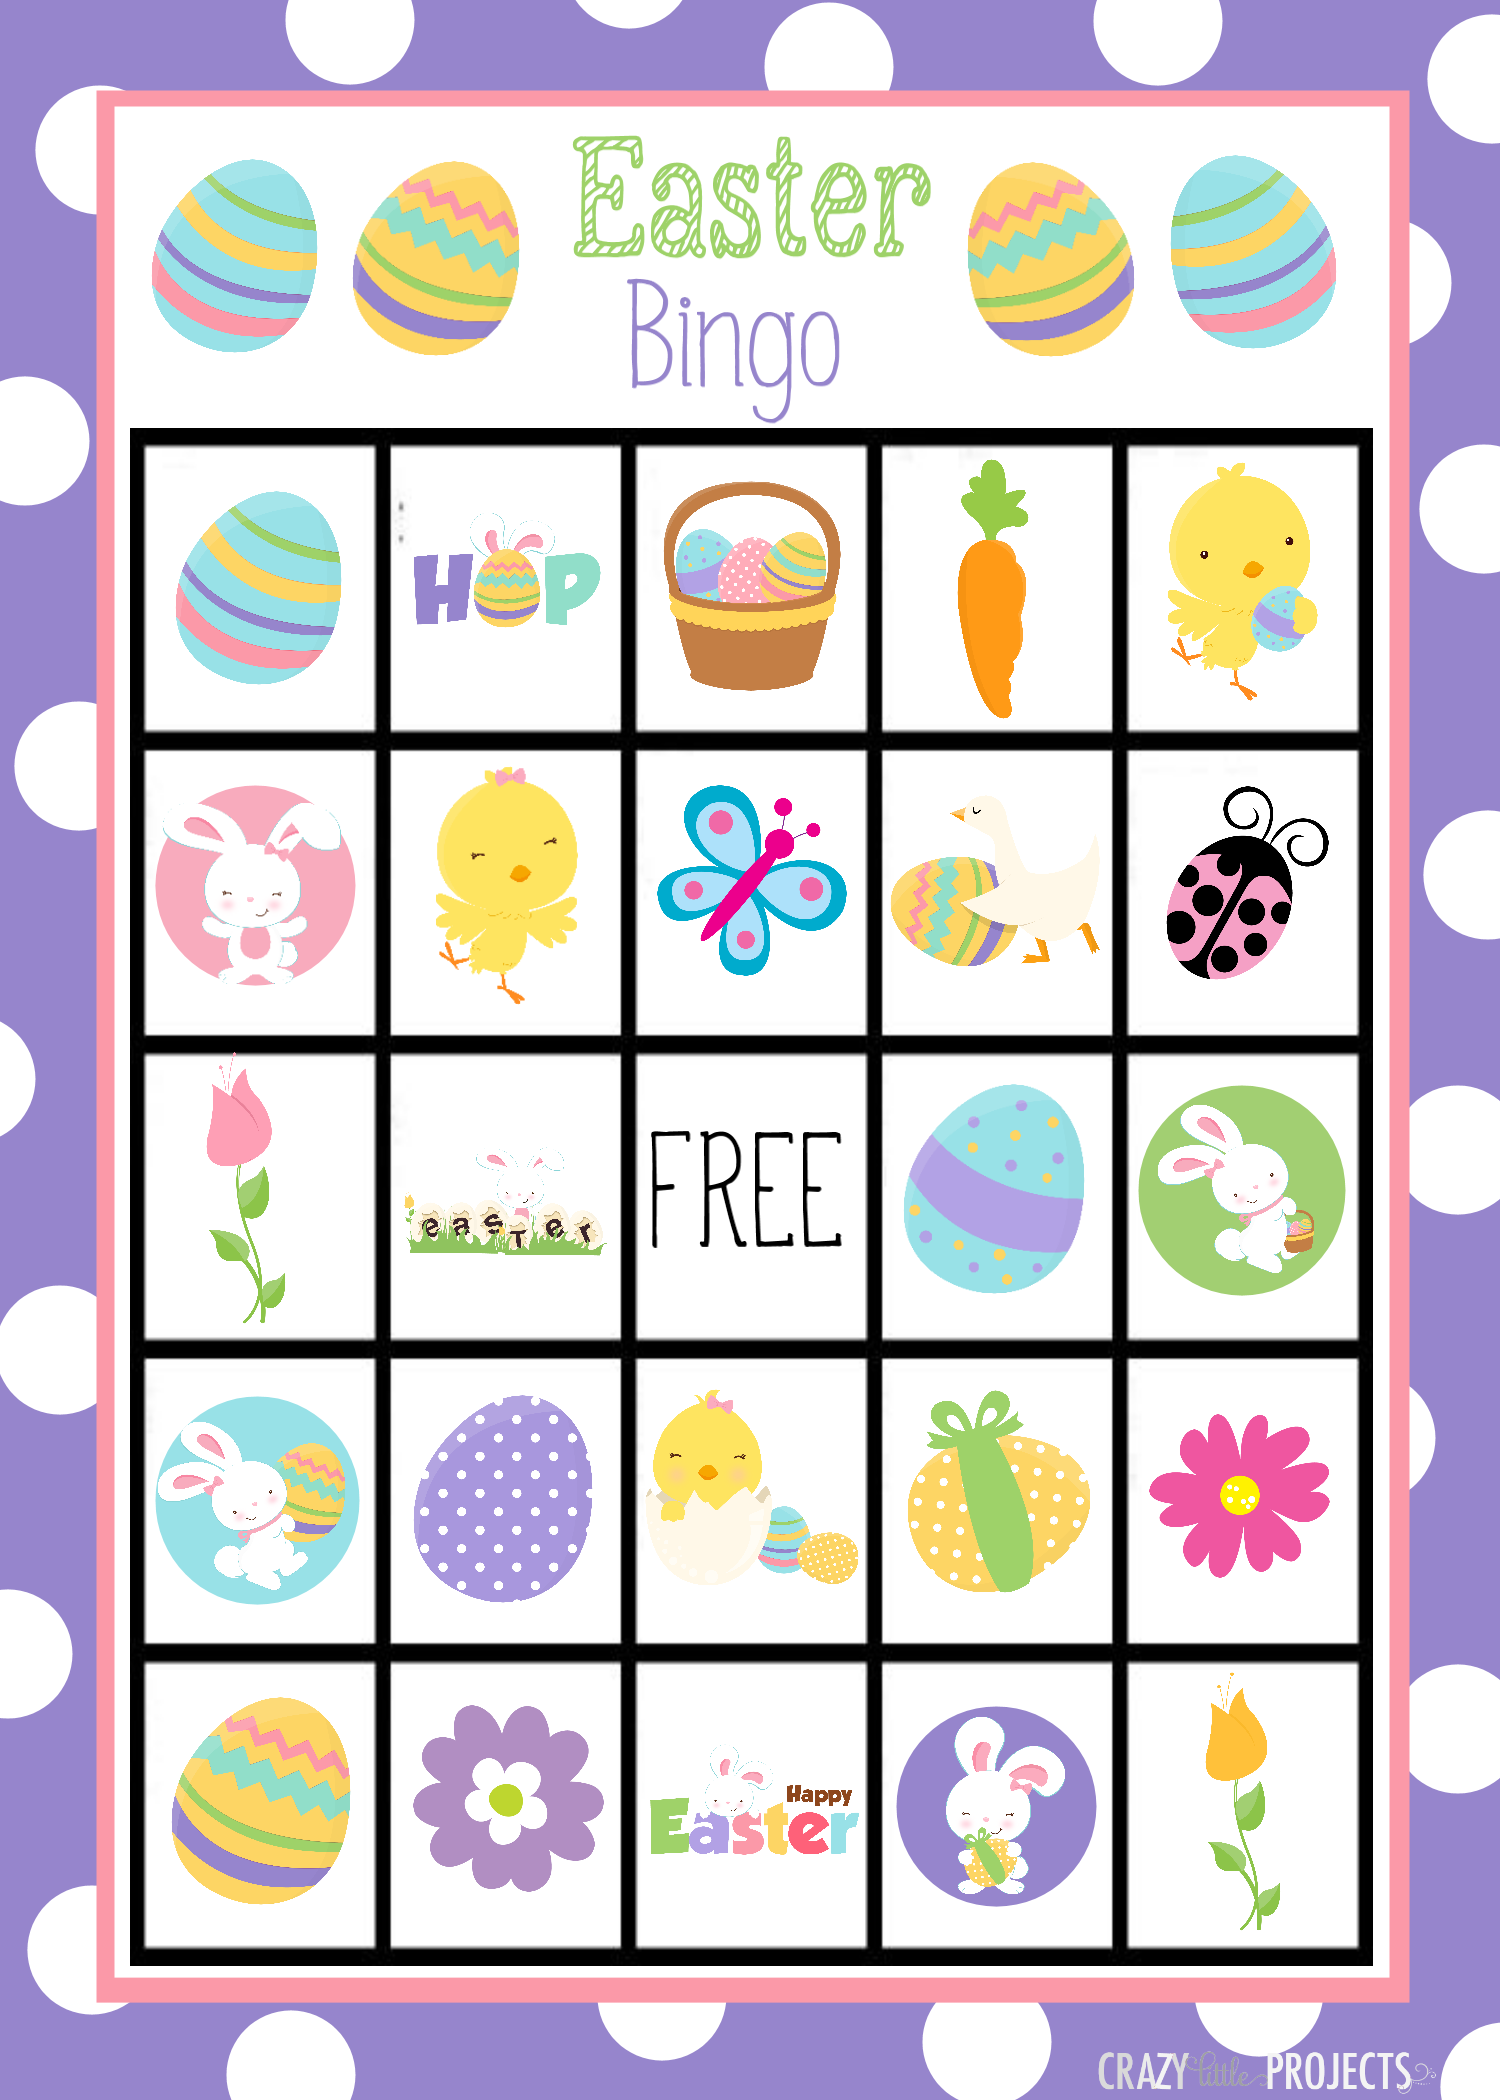 9 Images of Easter Bingo Printable Sheets